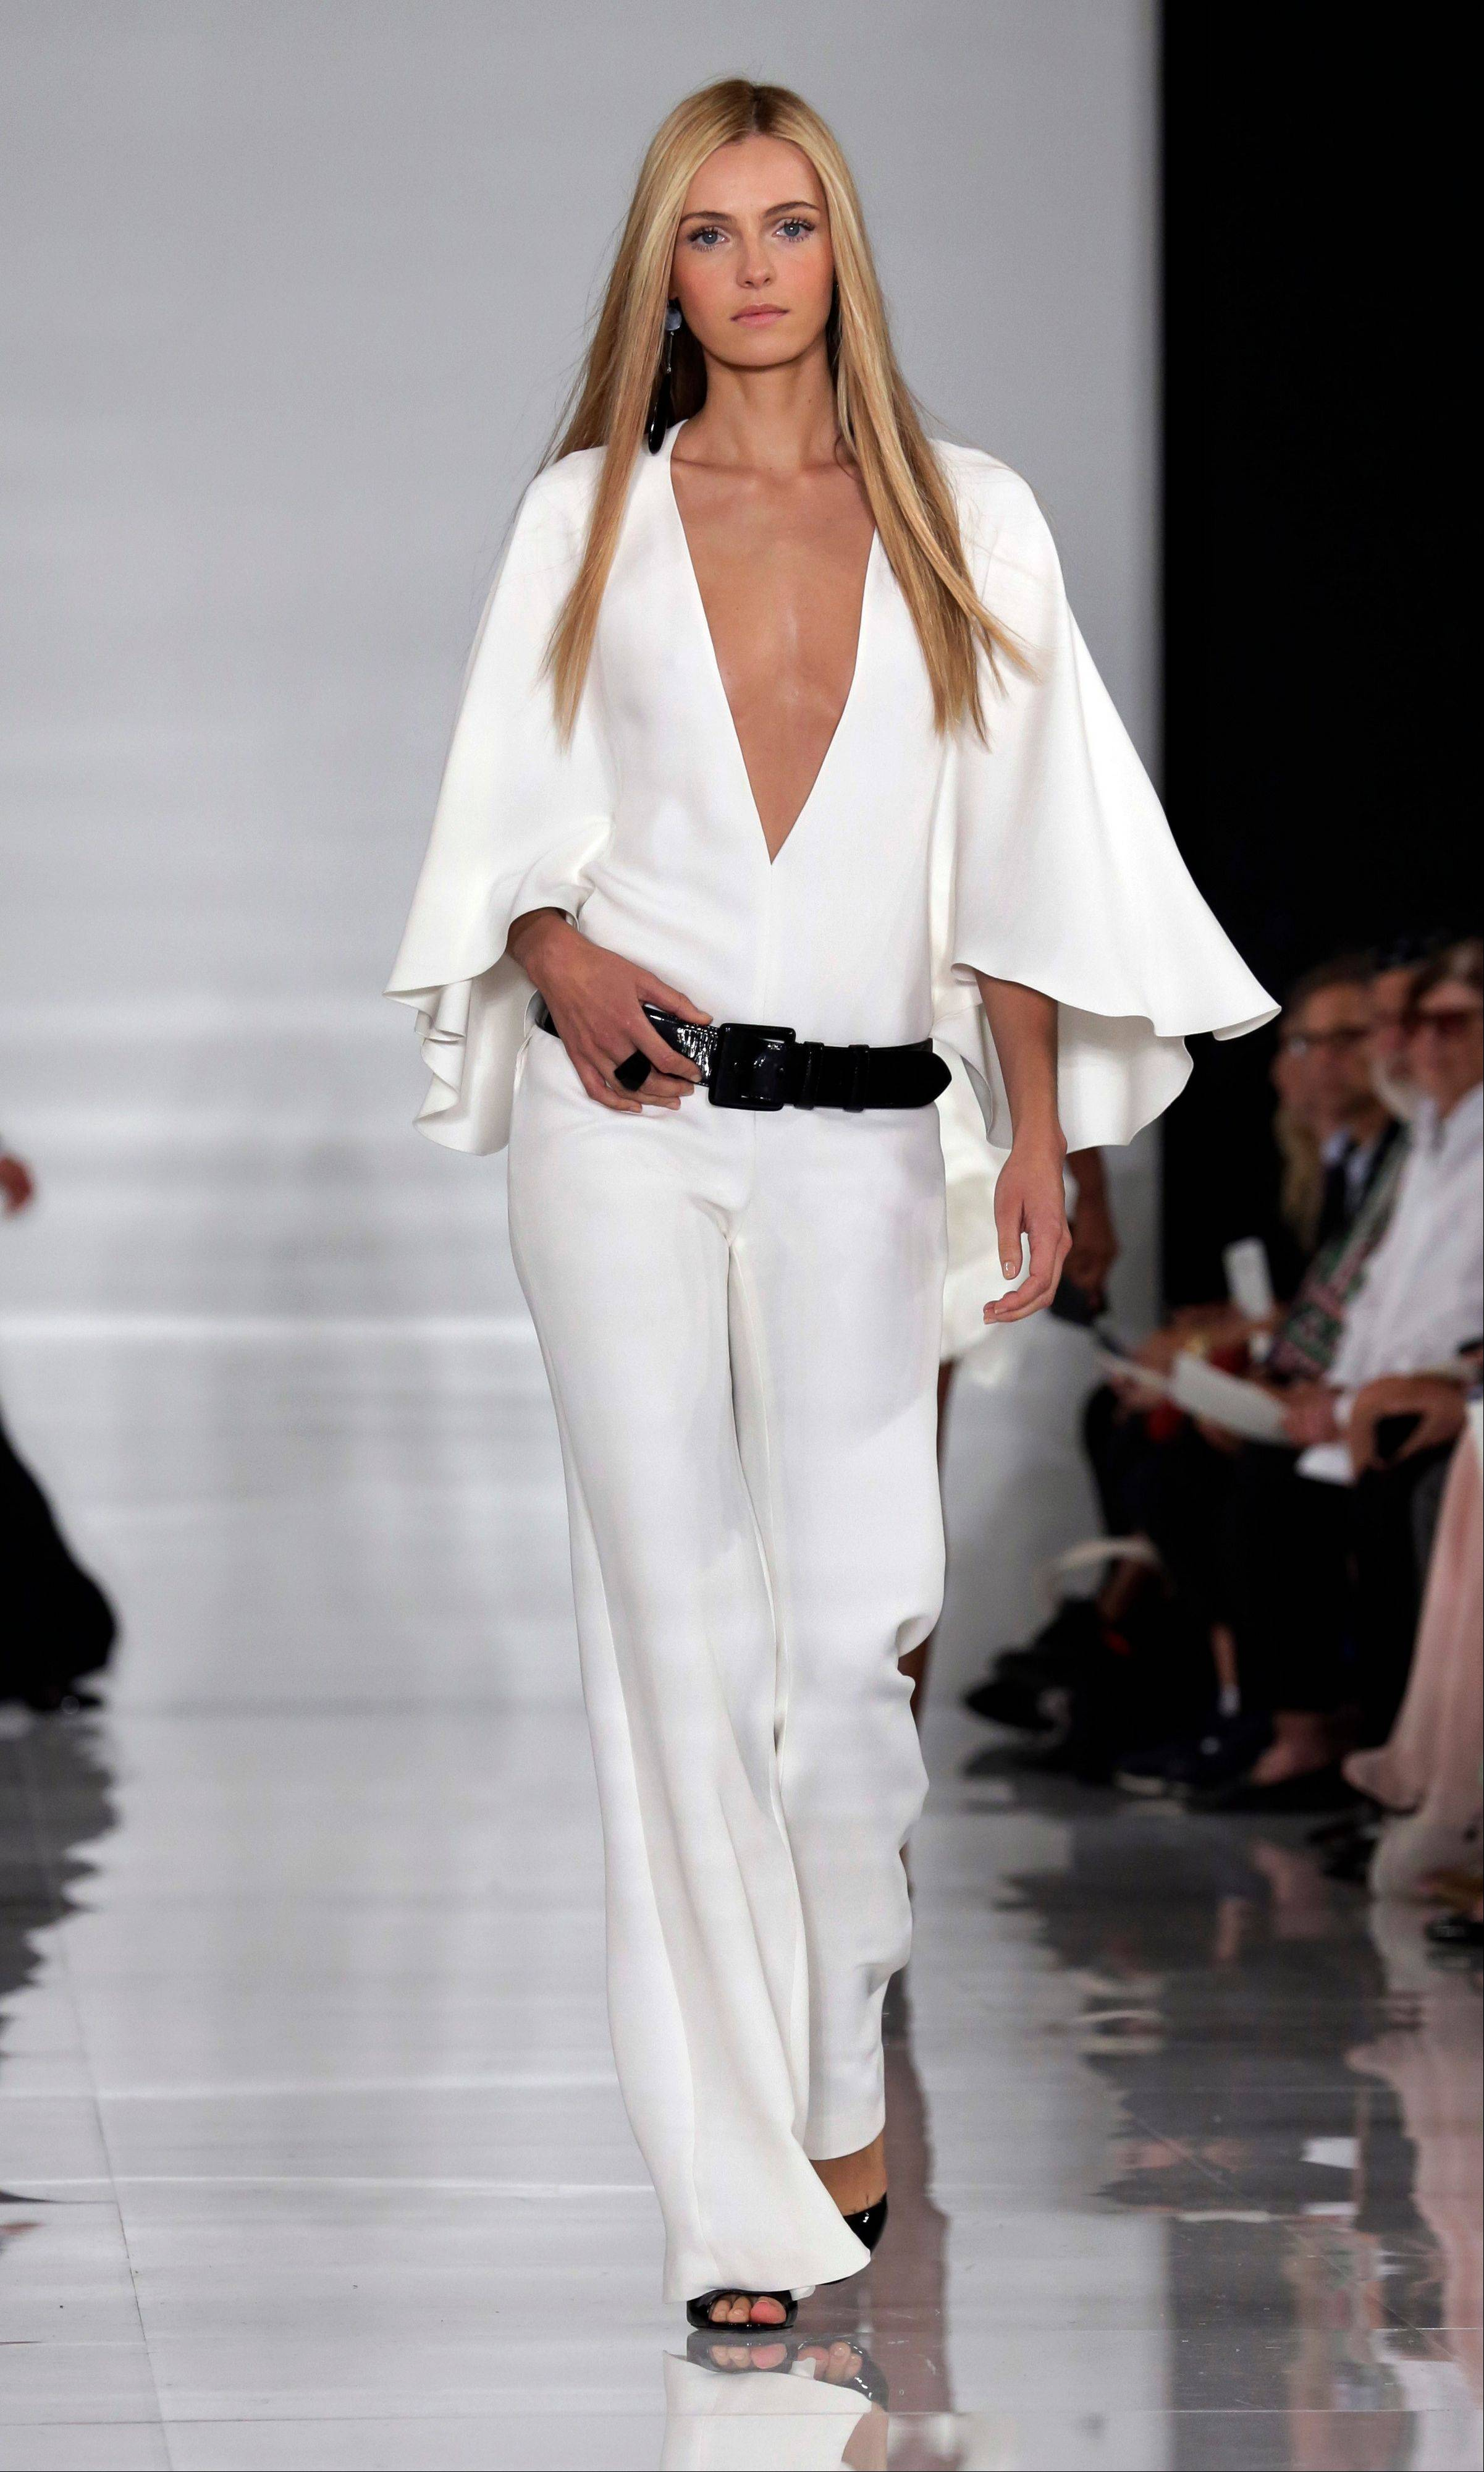 The Ralph Lauren Spring 2014 collection is modeled during Fashion Week in New York.